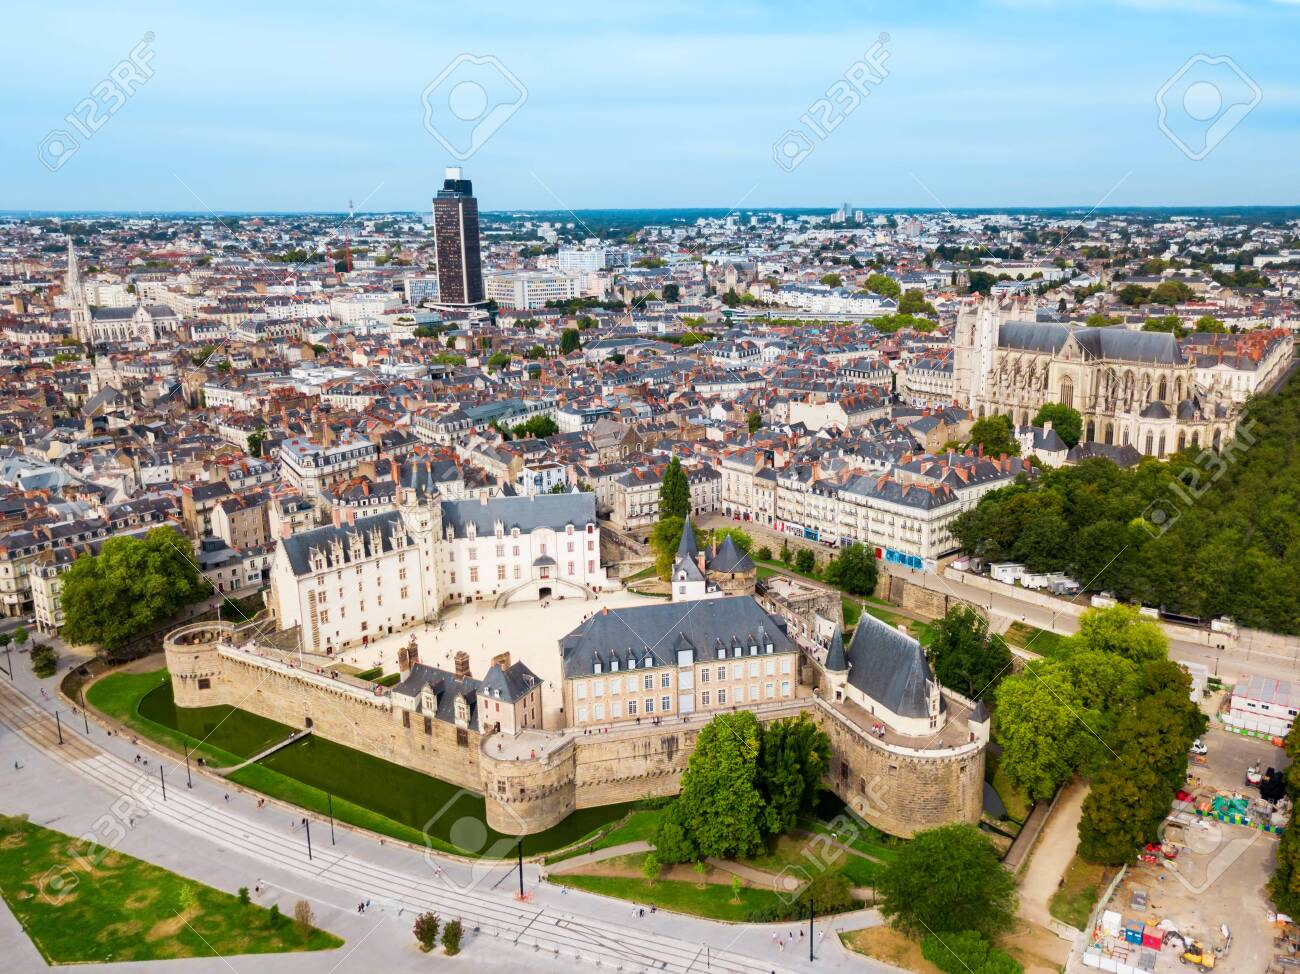 Nantes aerial panoramic view. Nantes is a city in Loire-Atlantique region in France - 122423567